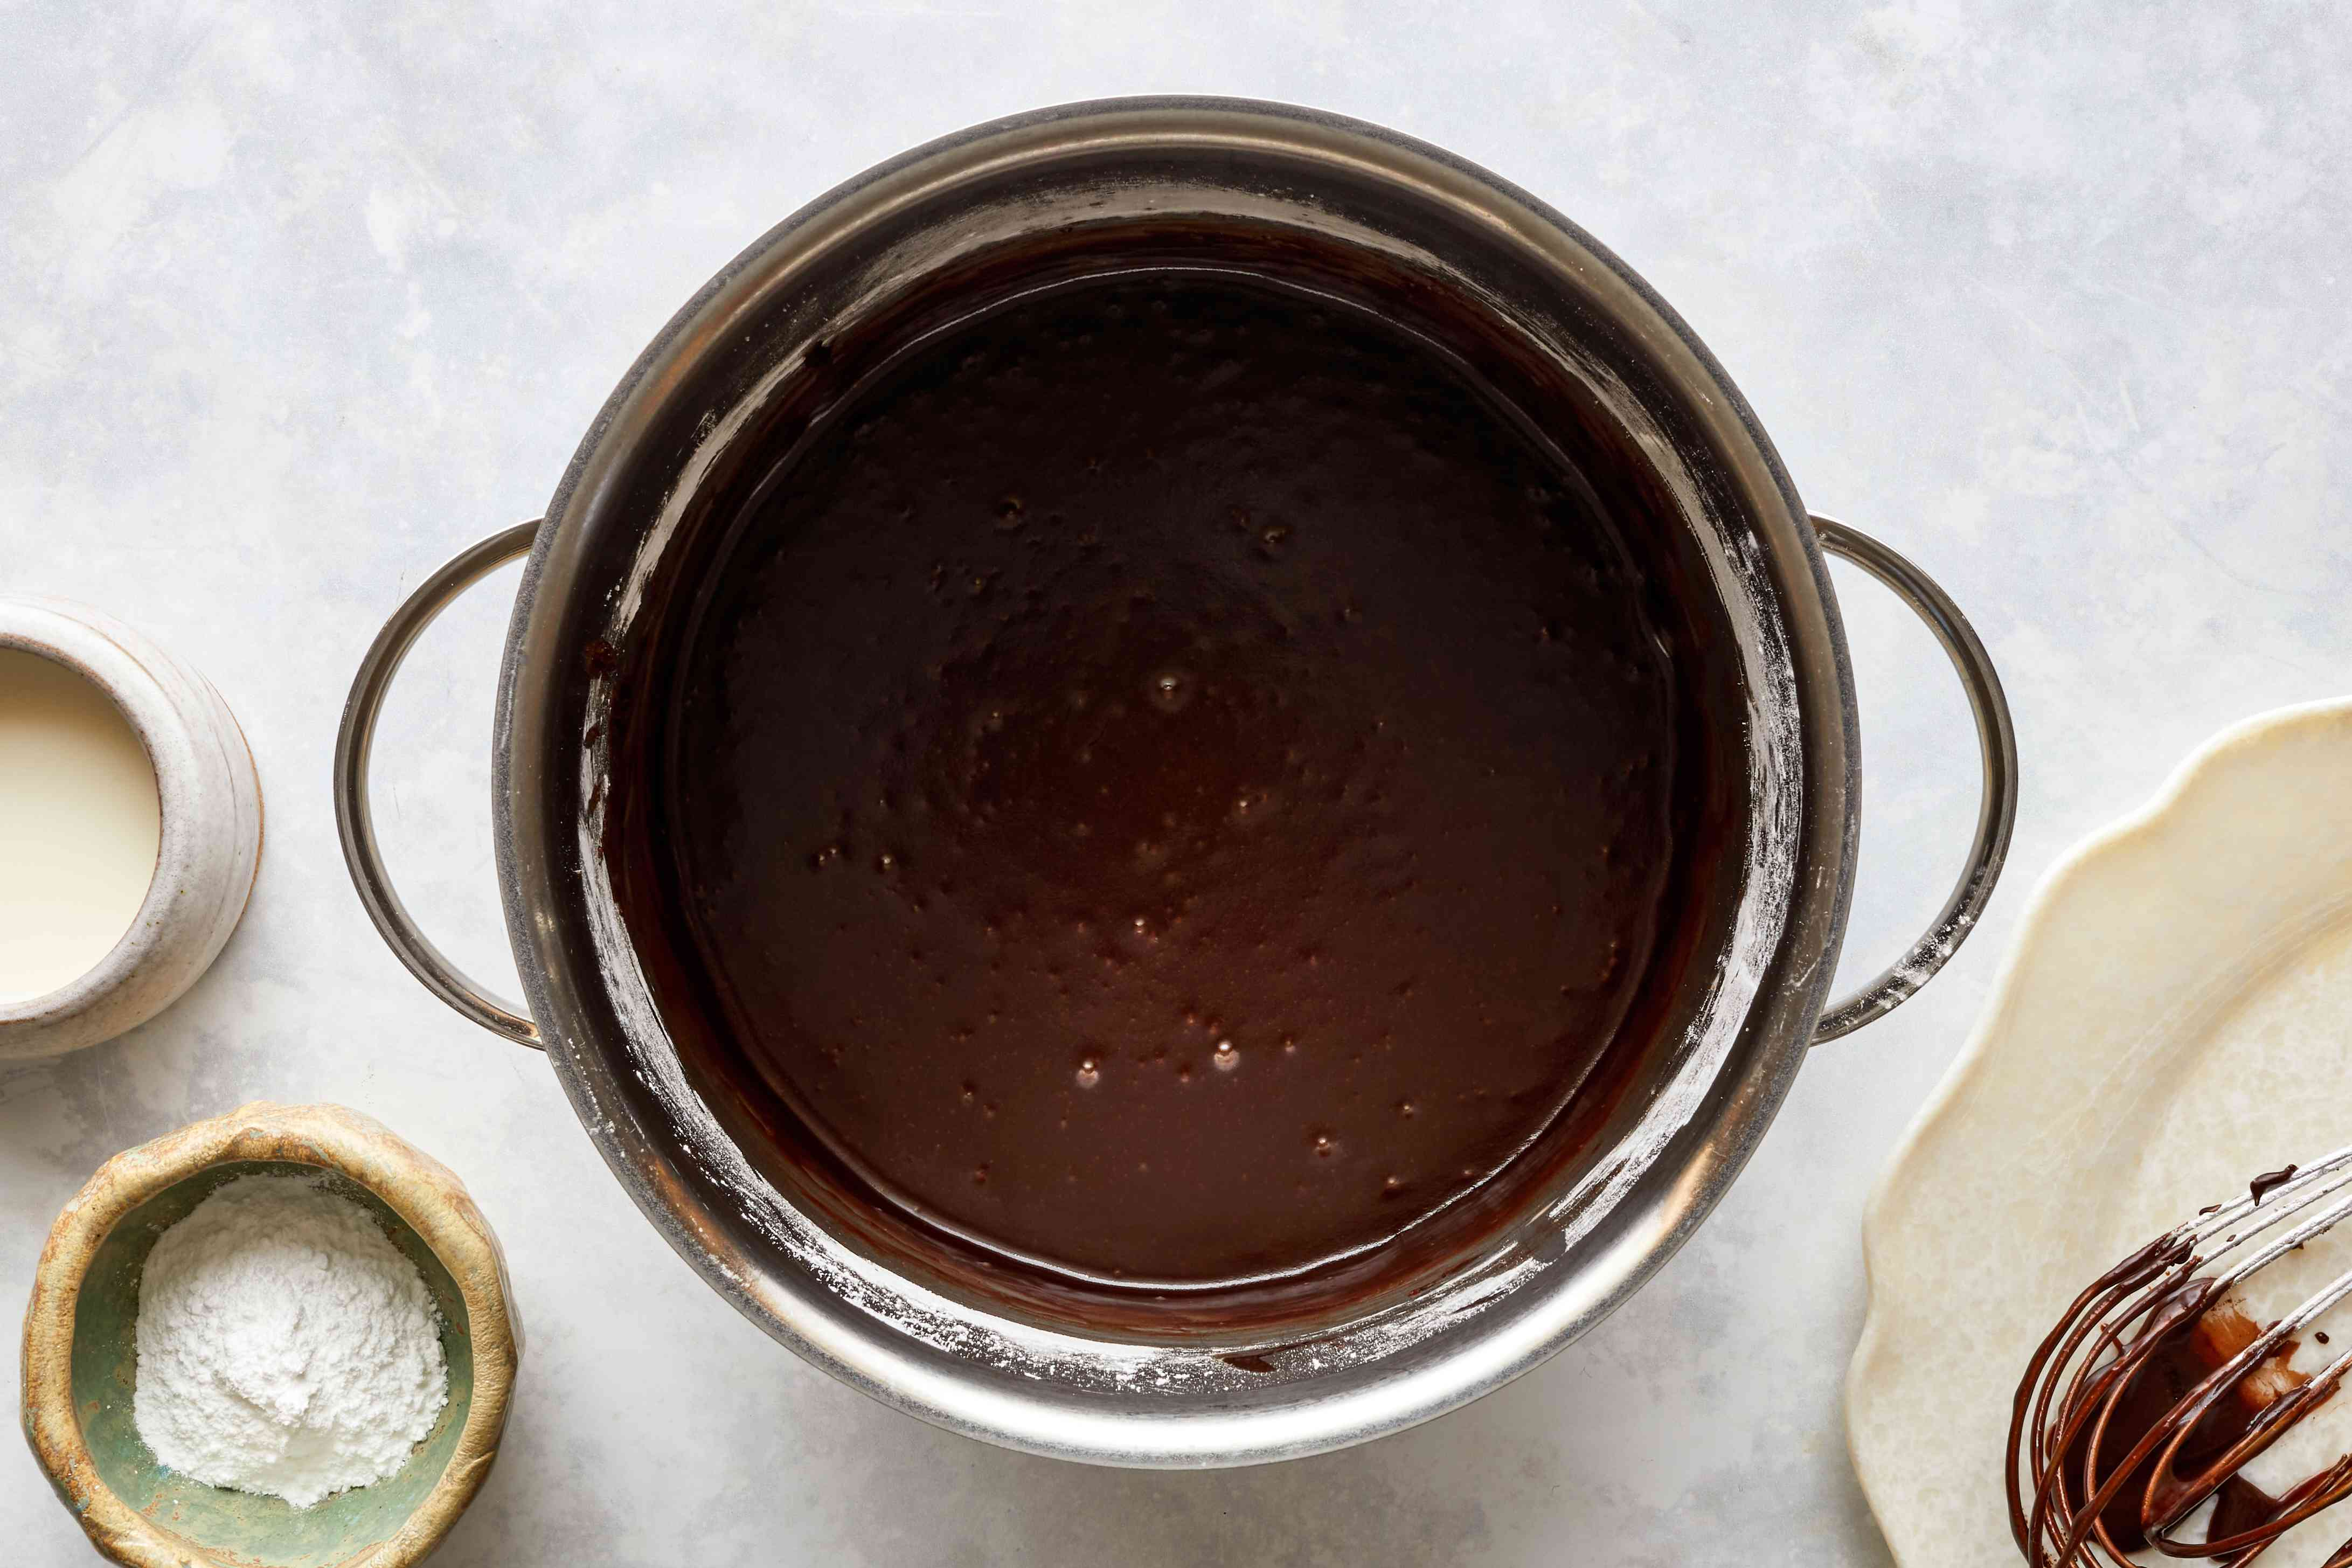 chocolate glaze in a bowl, mixture of butter, milk, cocoa powder, and confectioners' sugar